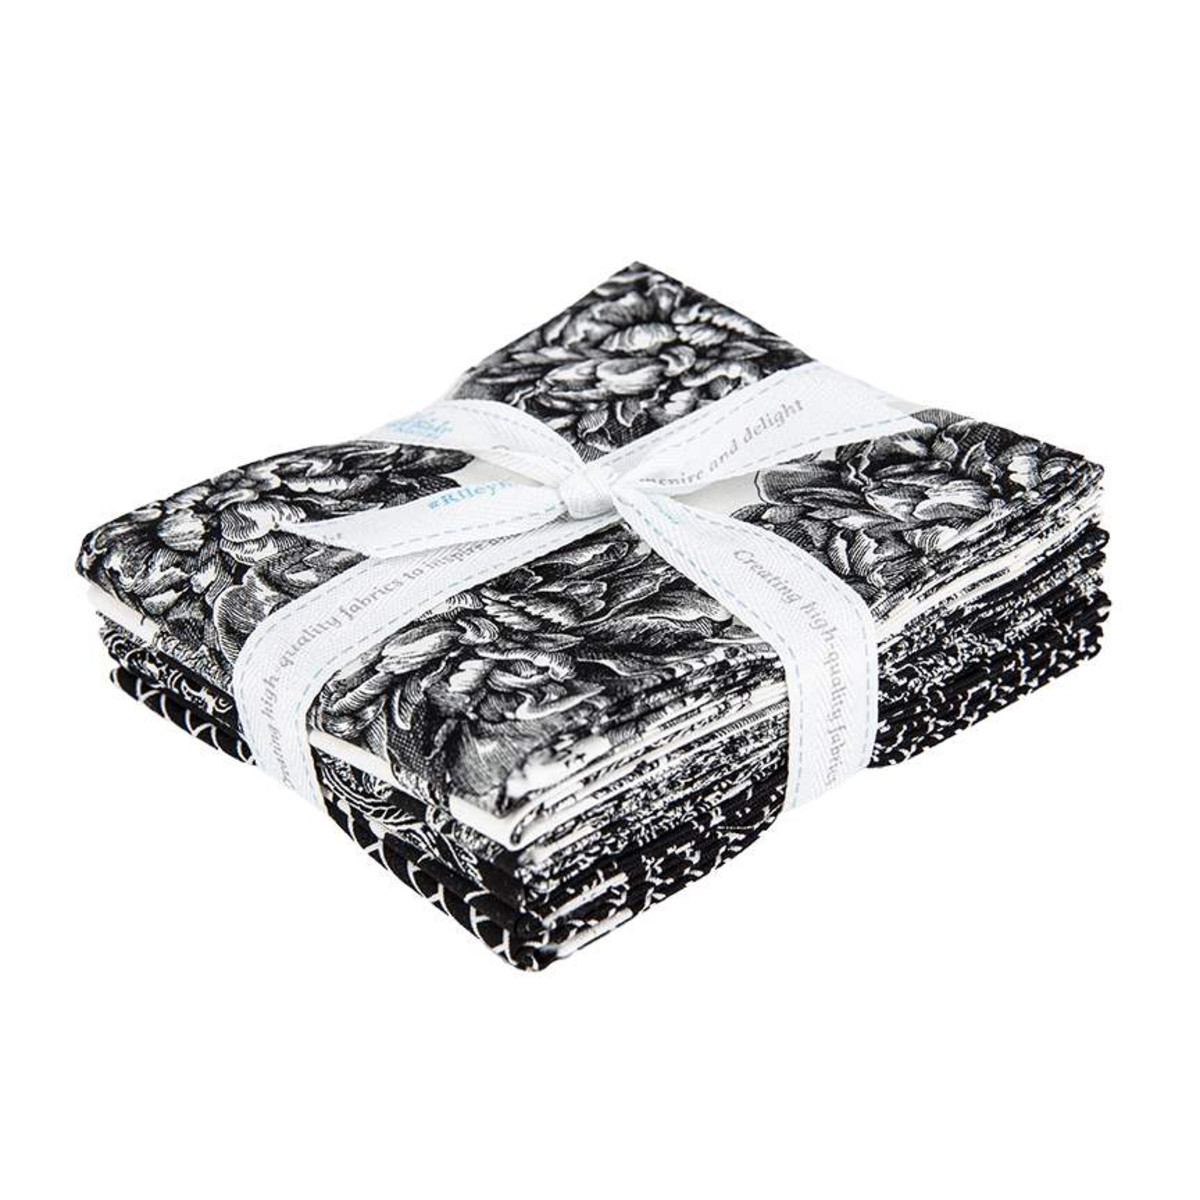 Riley Blake Fat Quarter Bundle - Classic Caskata Black